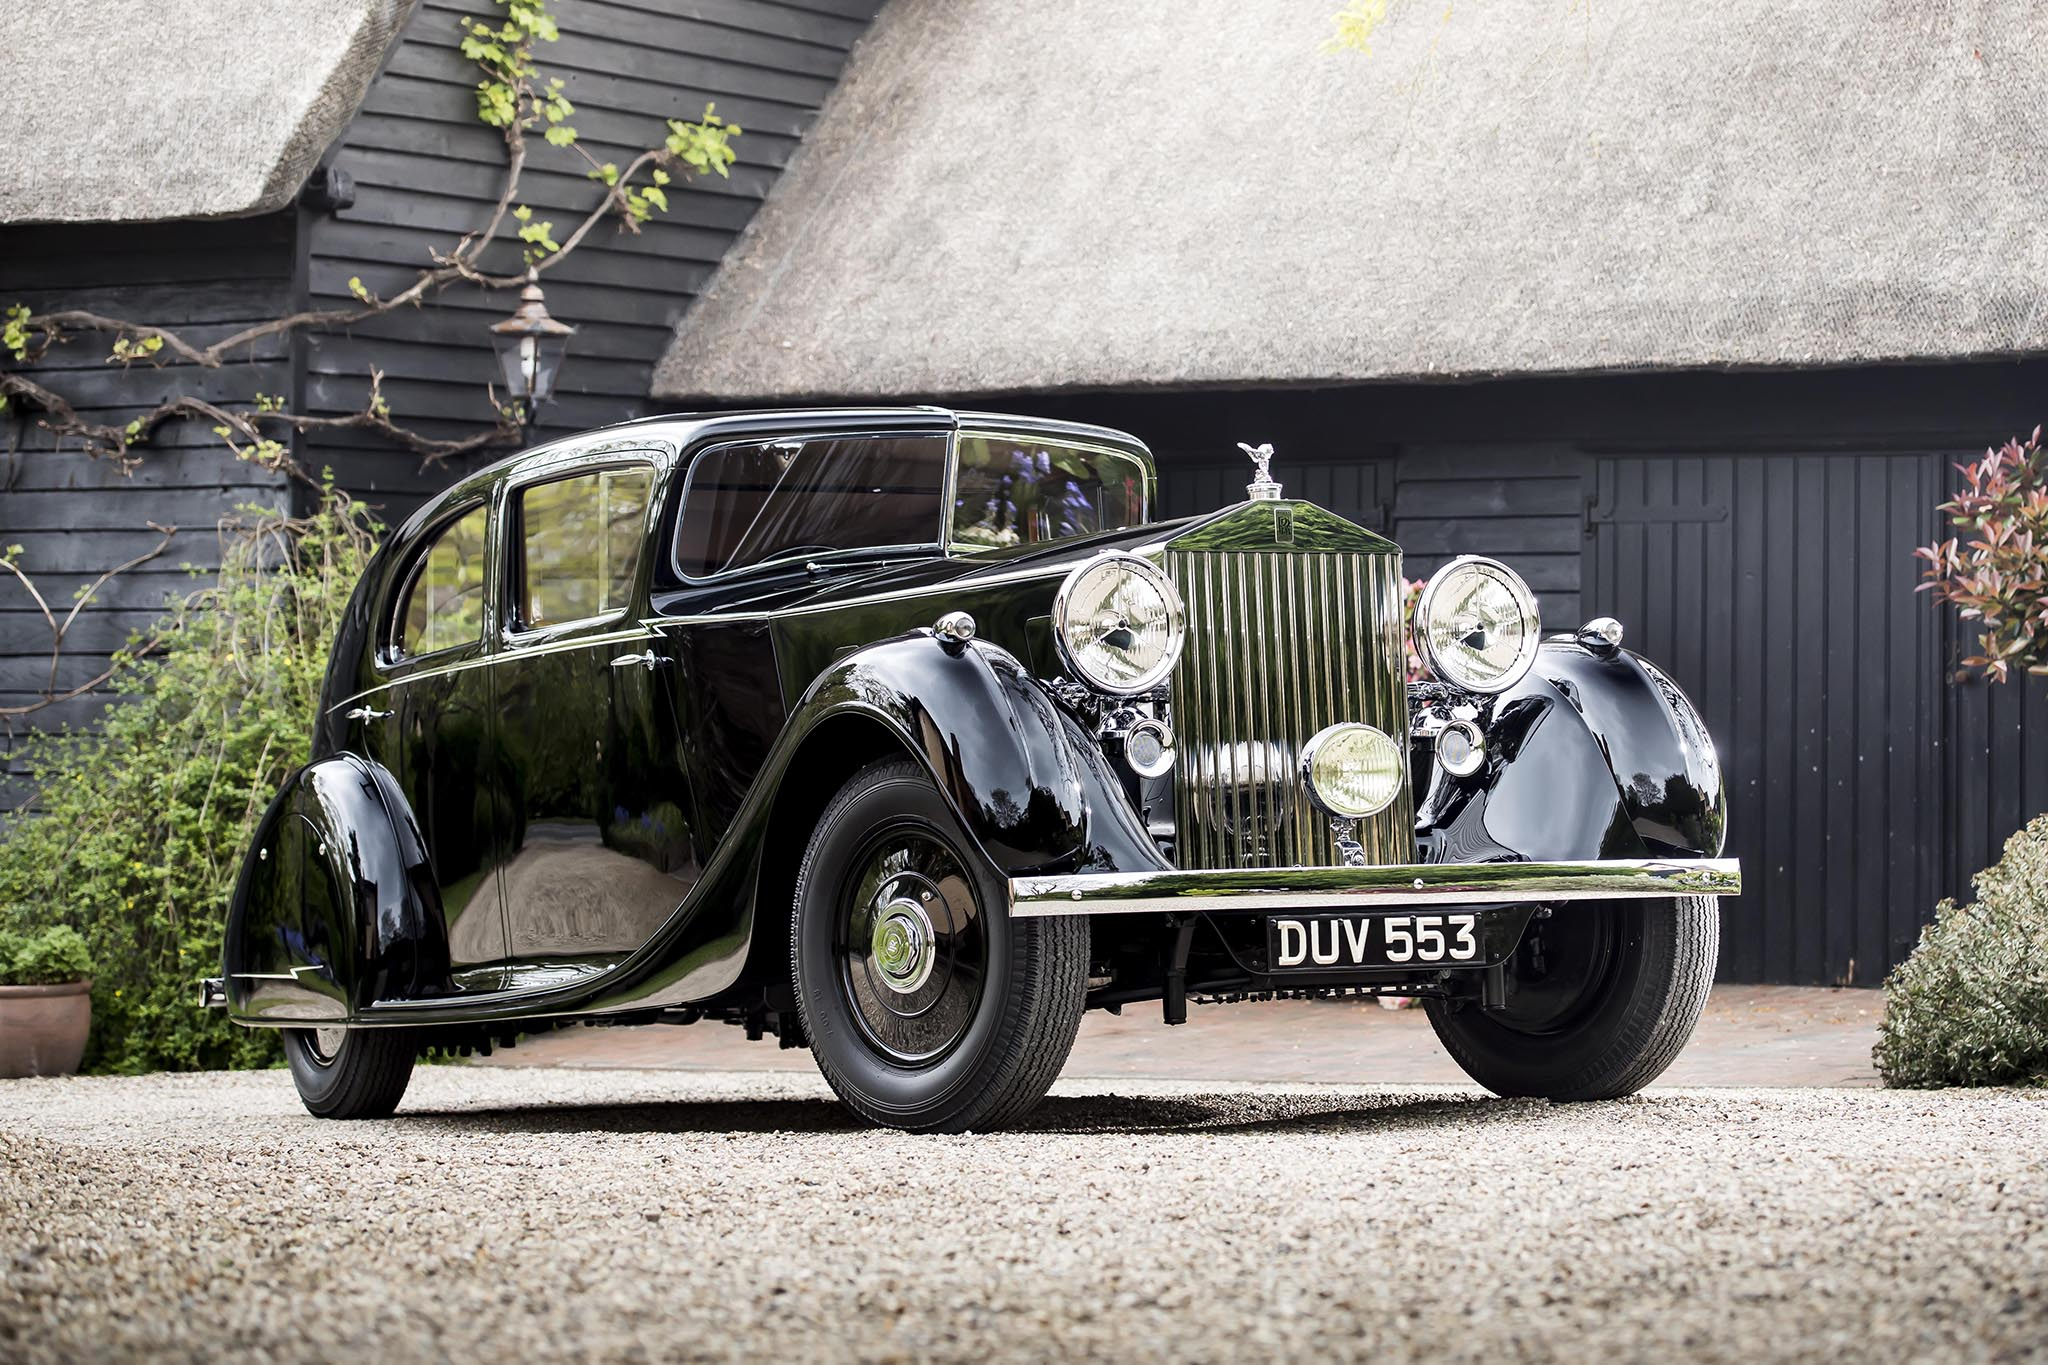 1936 Rolls Royce Phantom Iii Owned By Field Marshal